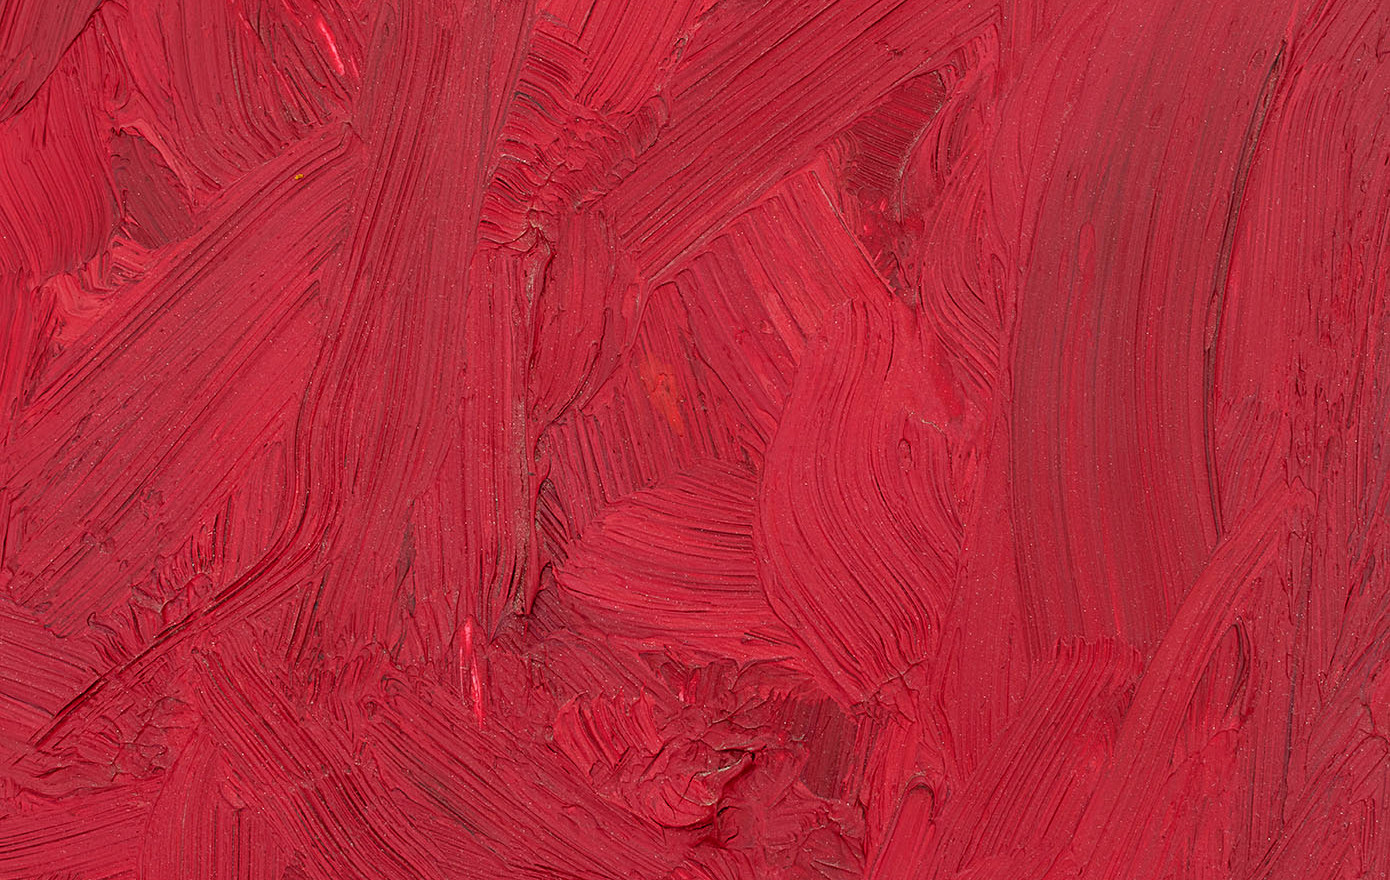 'Red remains', 2009, oil on marble, 60 x 30 x 2cm | framed: 67 x 44 x 13.5 cm (Detail)